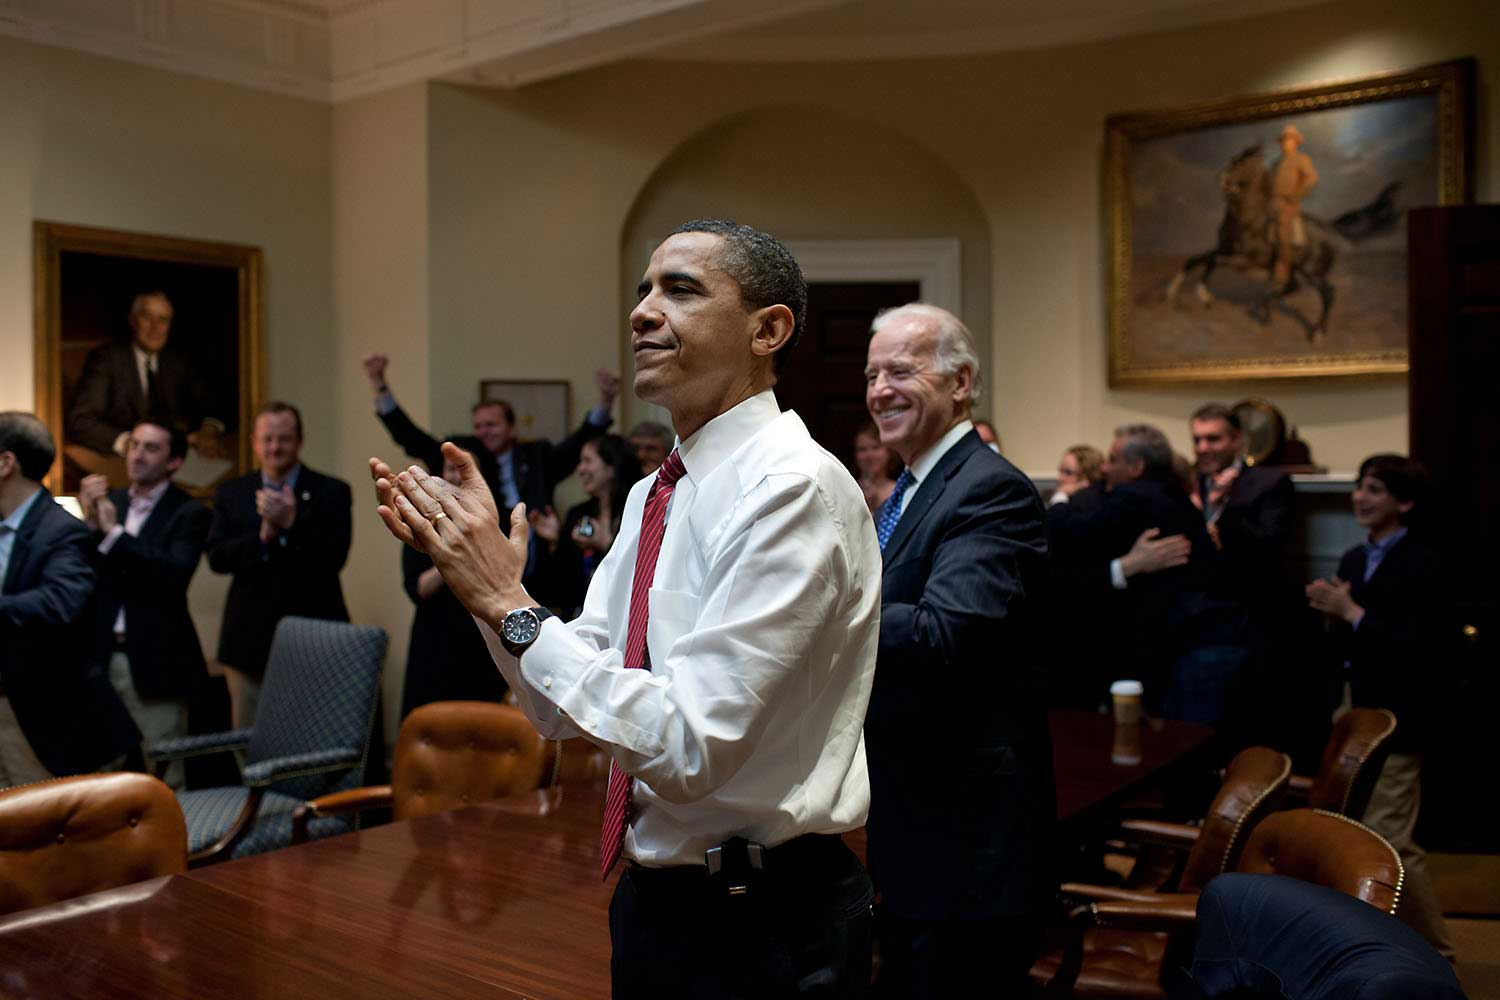 The President, Vice President and senior staff applaud after watching on television the House vote on H.R. 4872 for health care reform, in the Roosevelt Room of the White House, March 21, 2010.